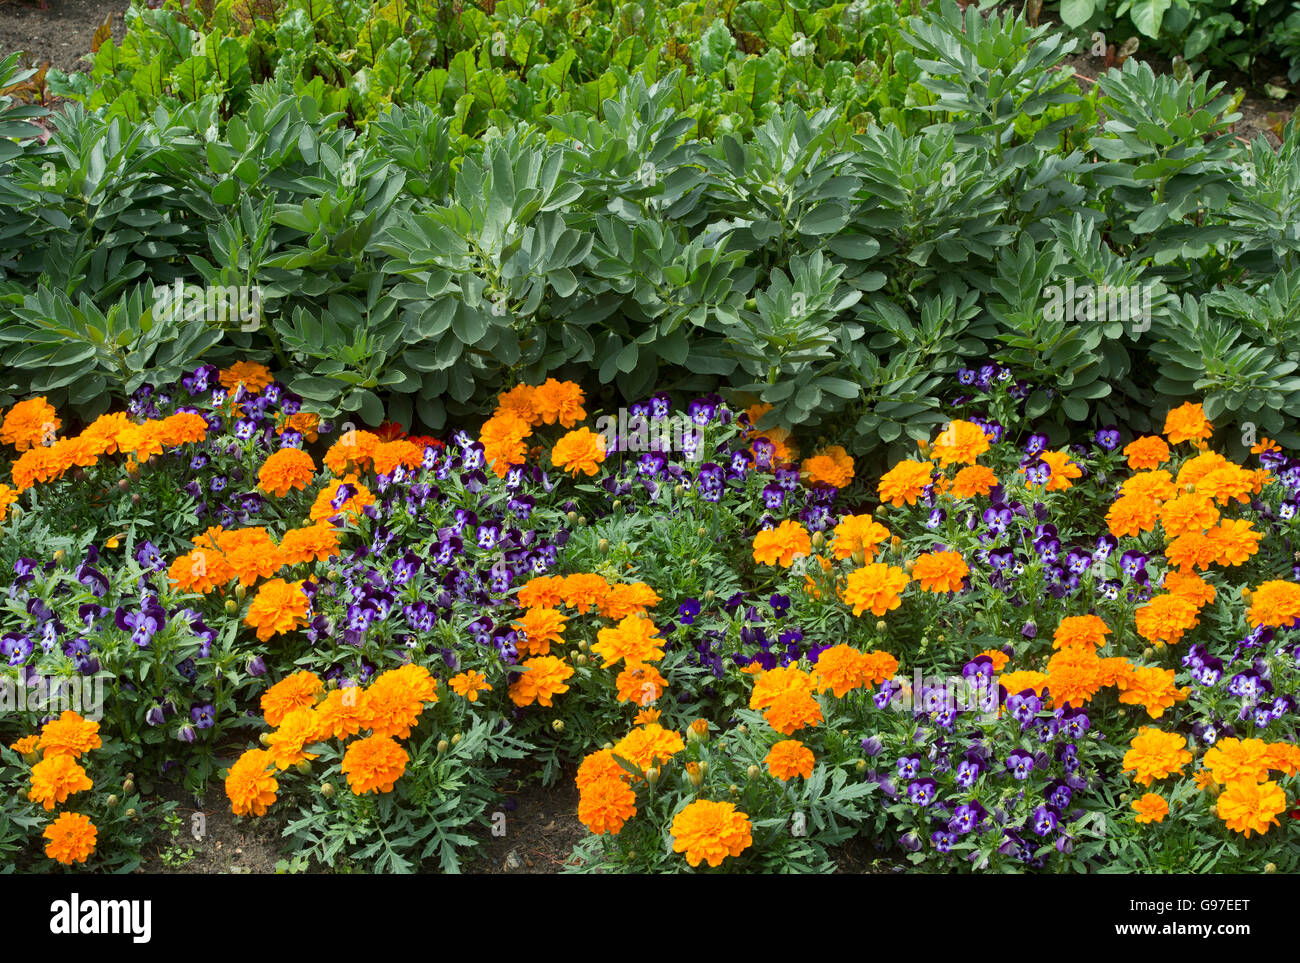 Marigolds and violets planted in a vegetable garden border. UK - Stock Image